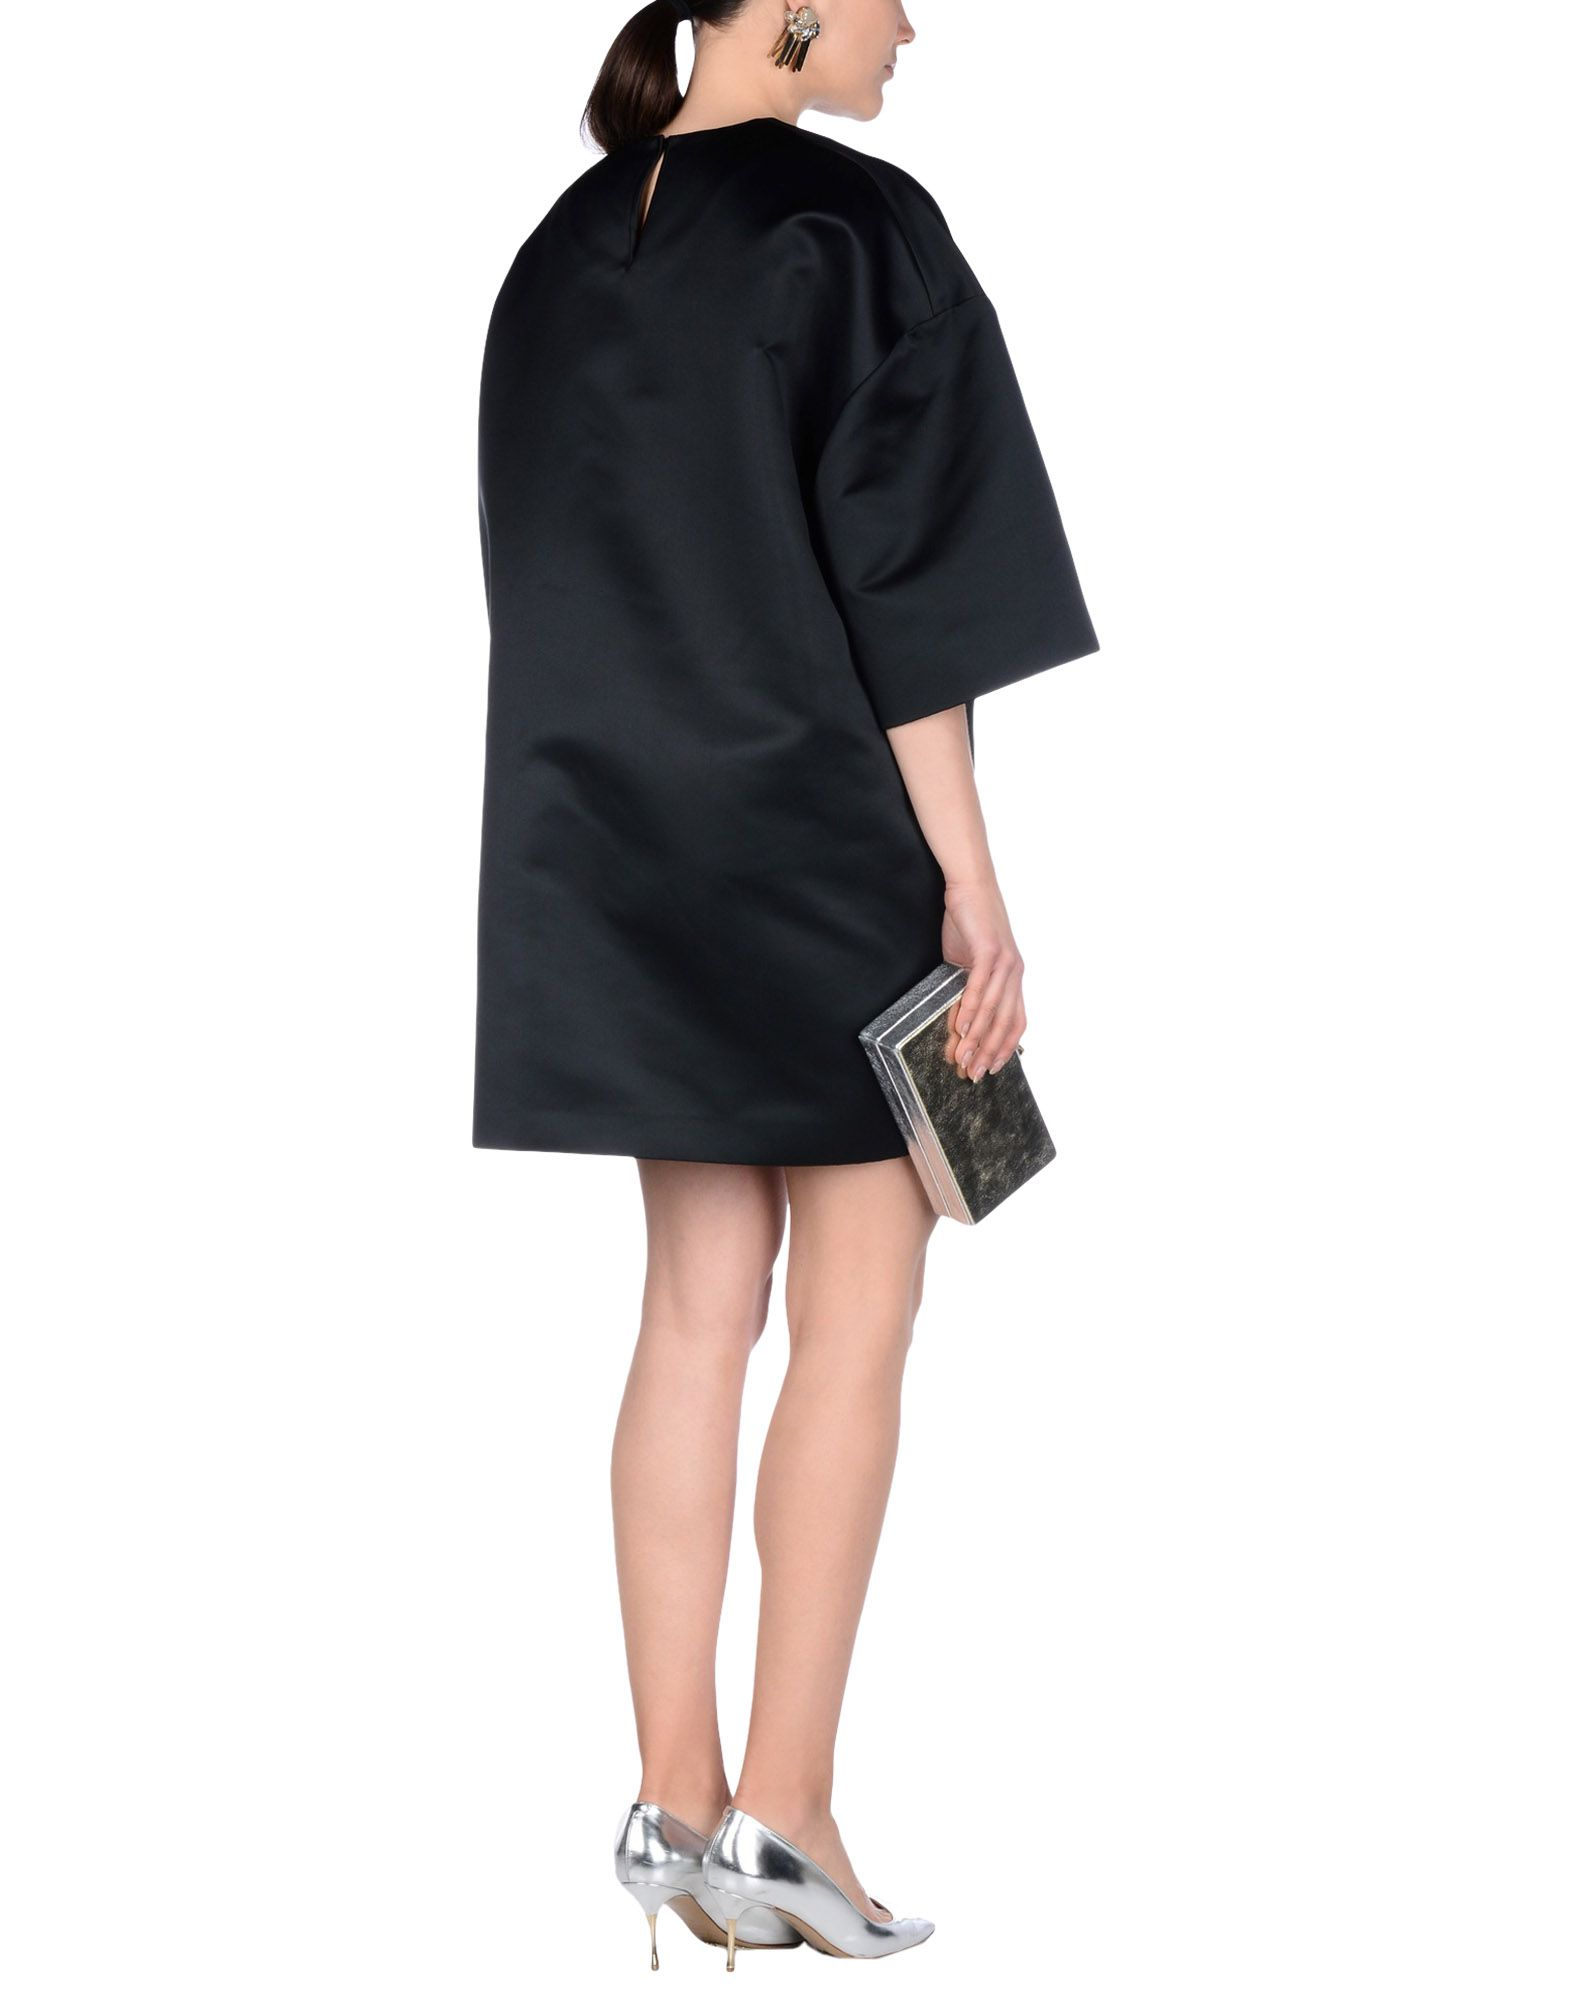 Rochas black dress3